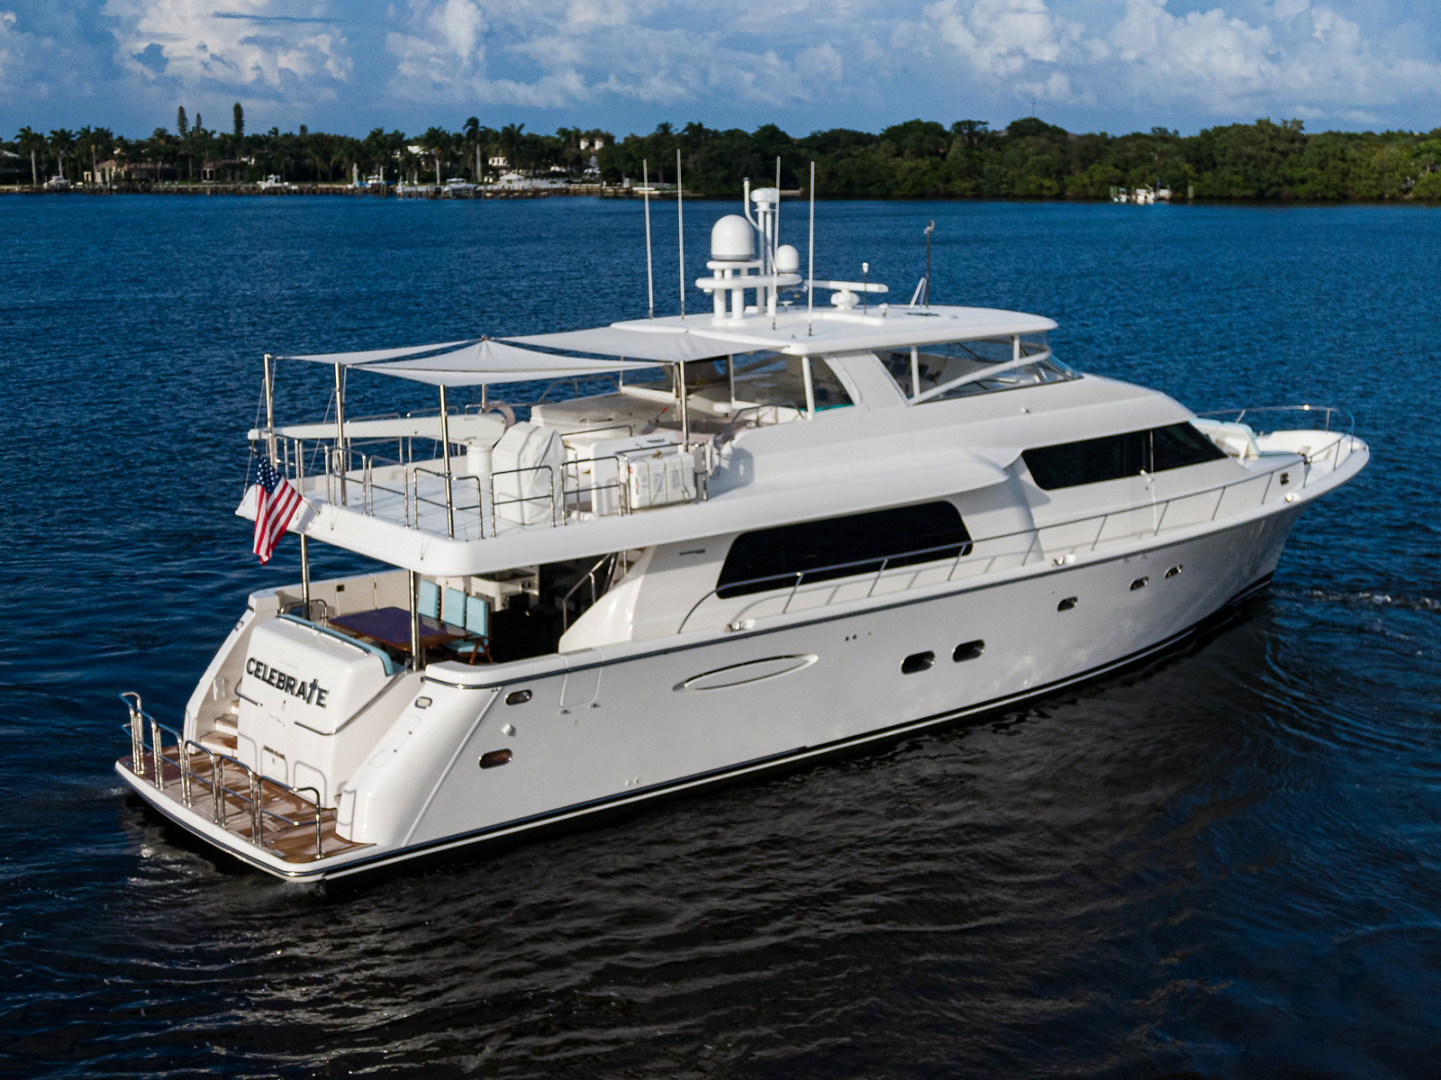 Pacific Mariner-Motor Yacht 2009-Celebrate North Palm Beach-Florida-United States-Celebrate-1515928 | Thumbnail